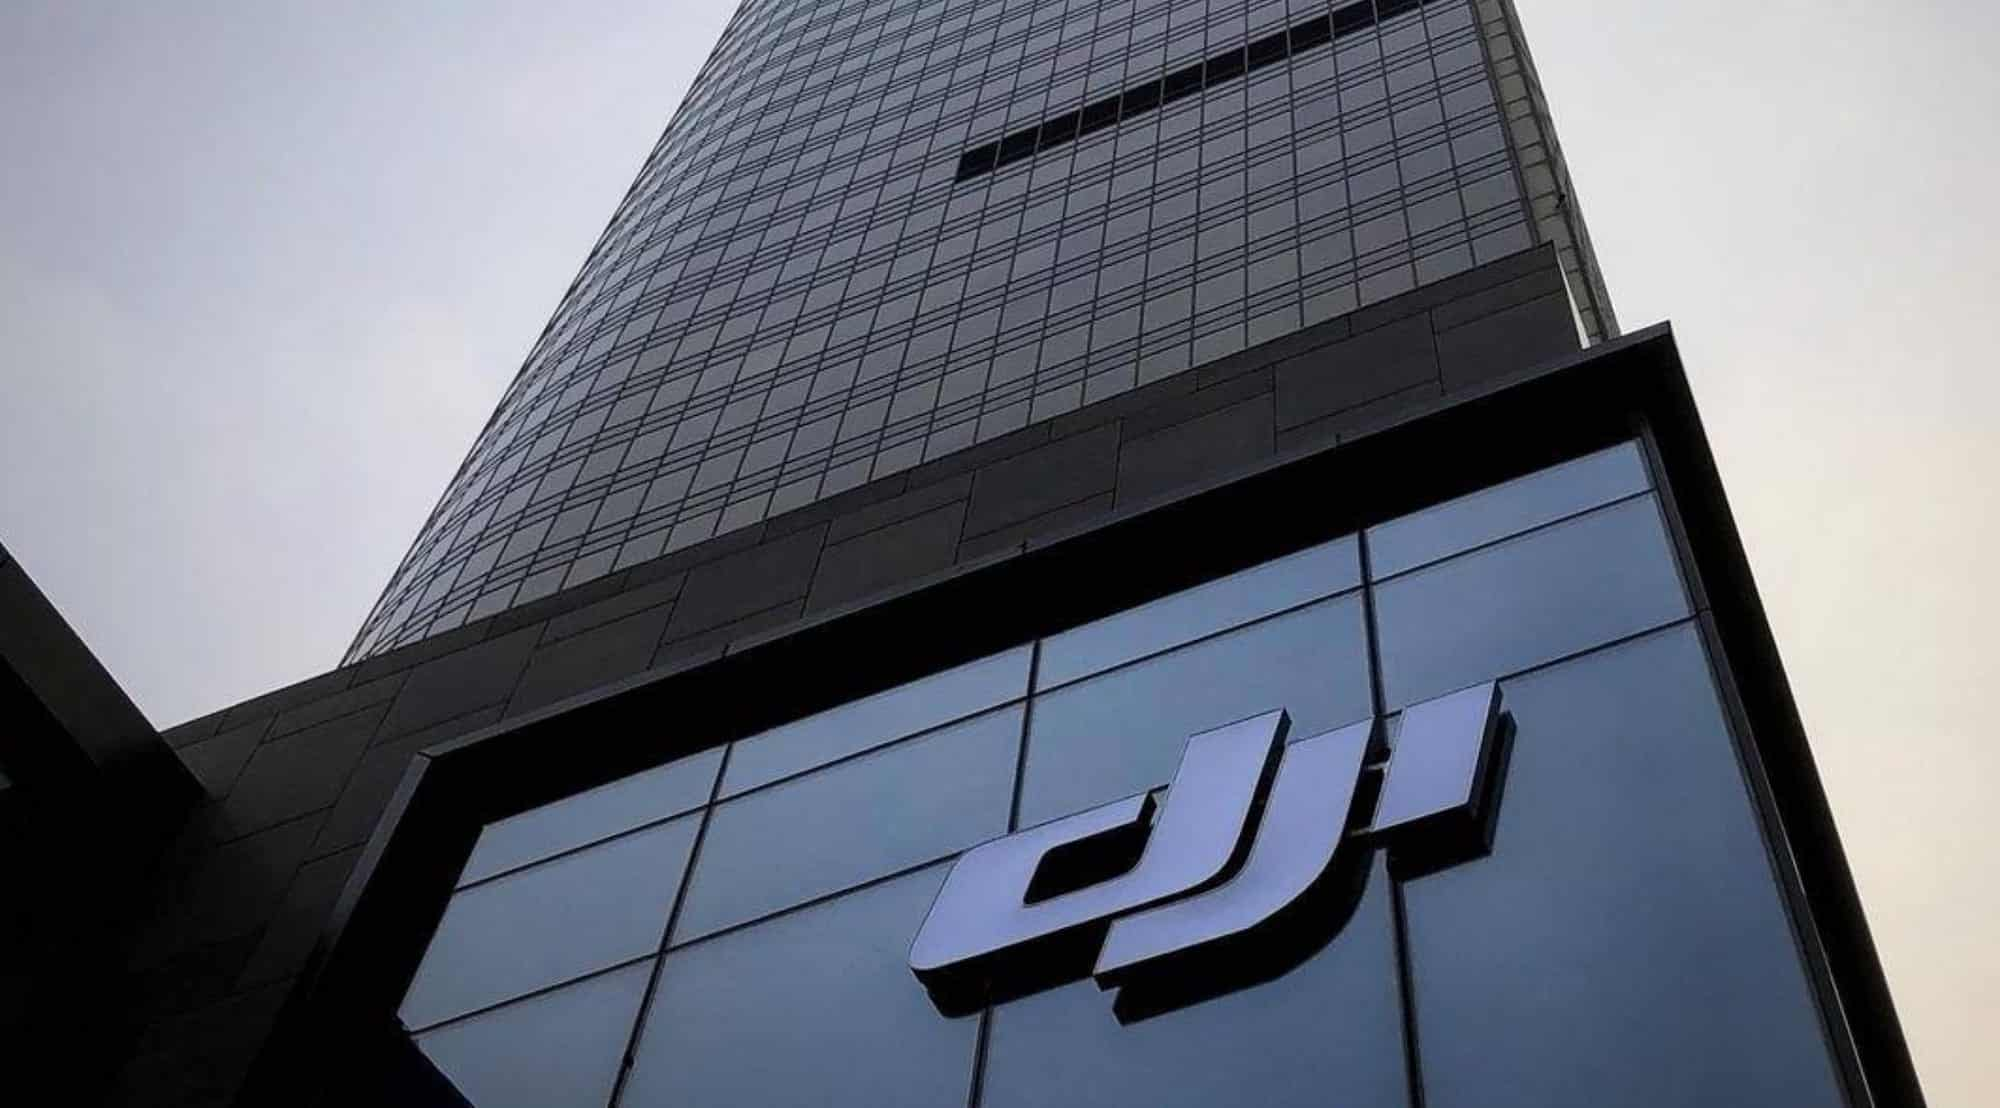 DJI marketing managers are leaving Chinese drone maker as R&D tightens grip